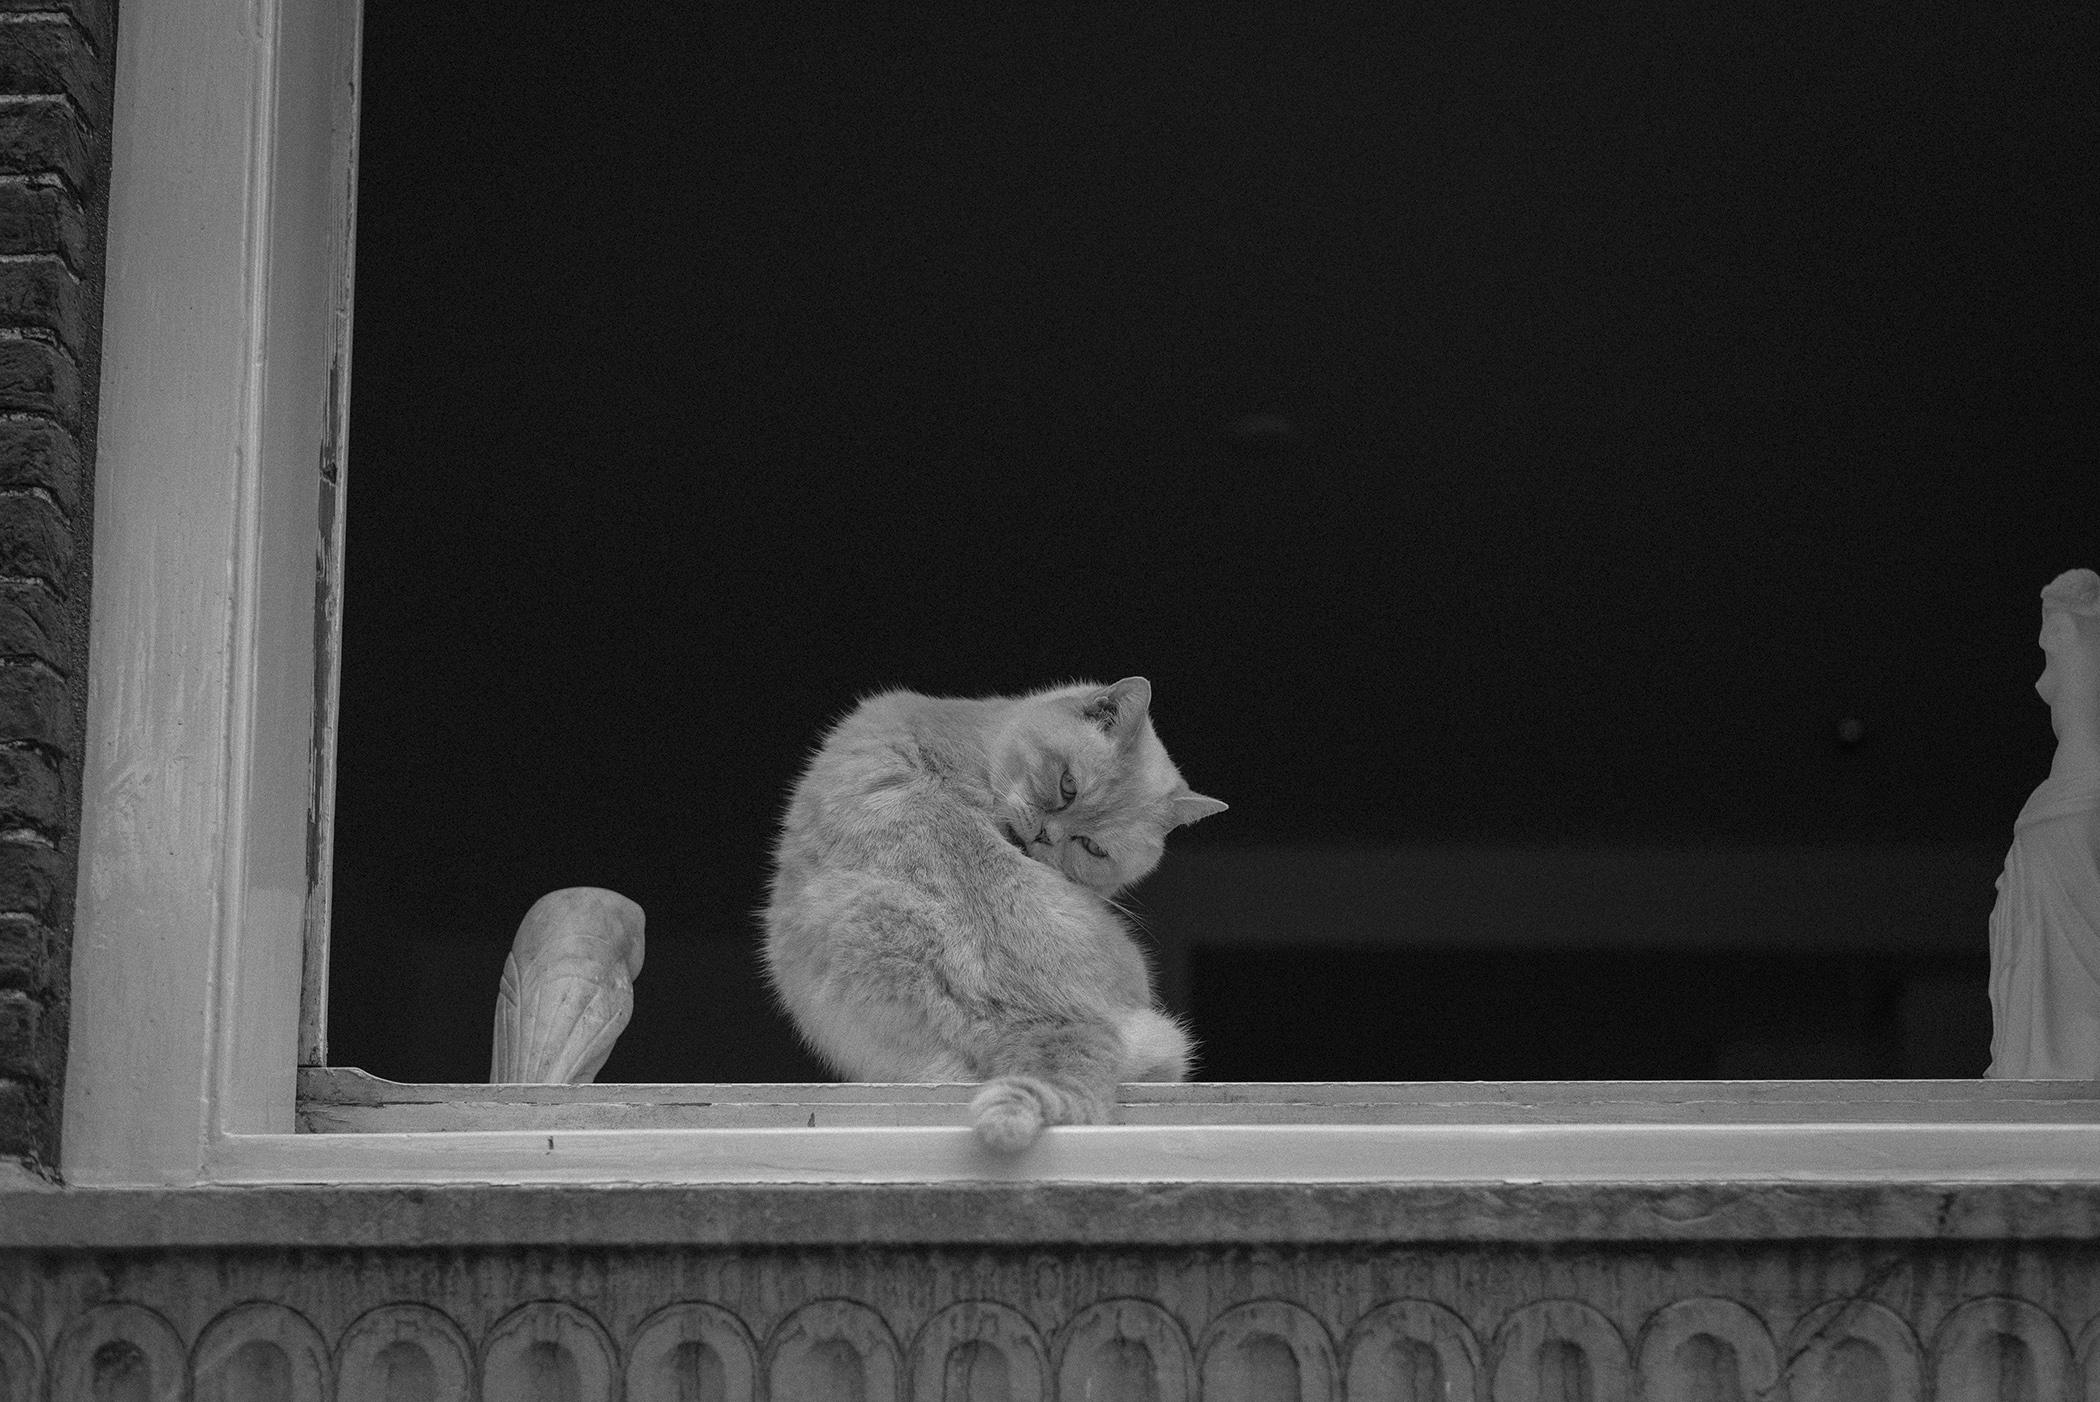 cat by window Netherlands bnw photography